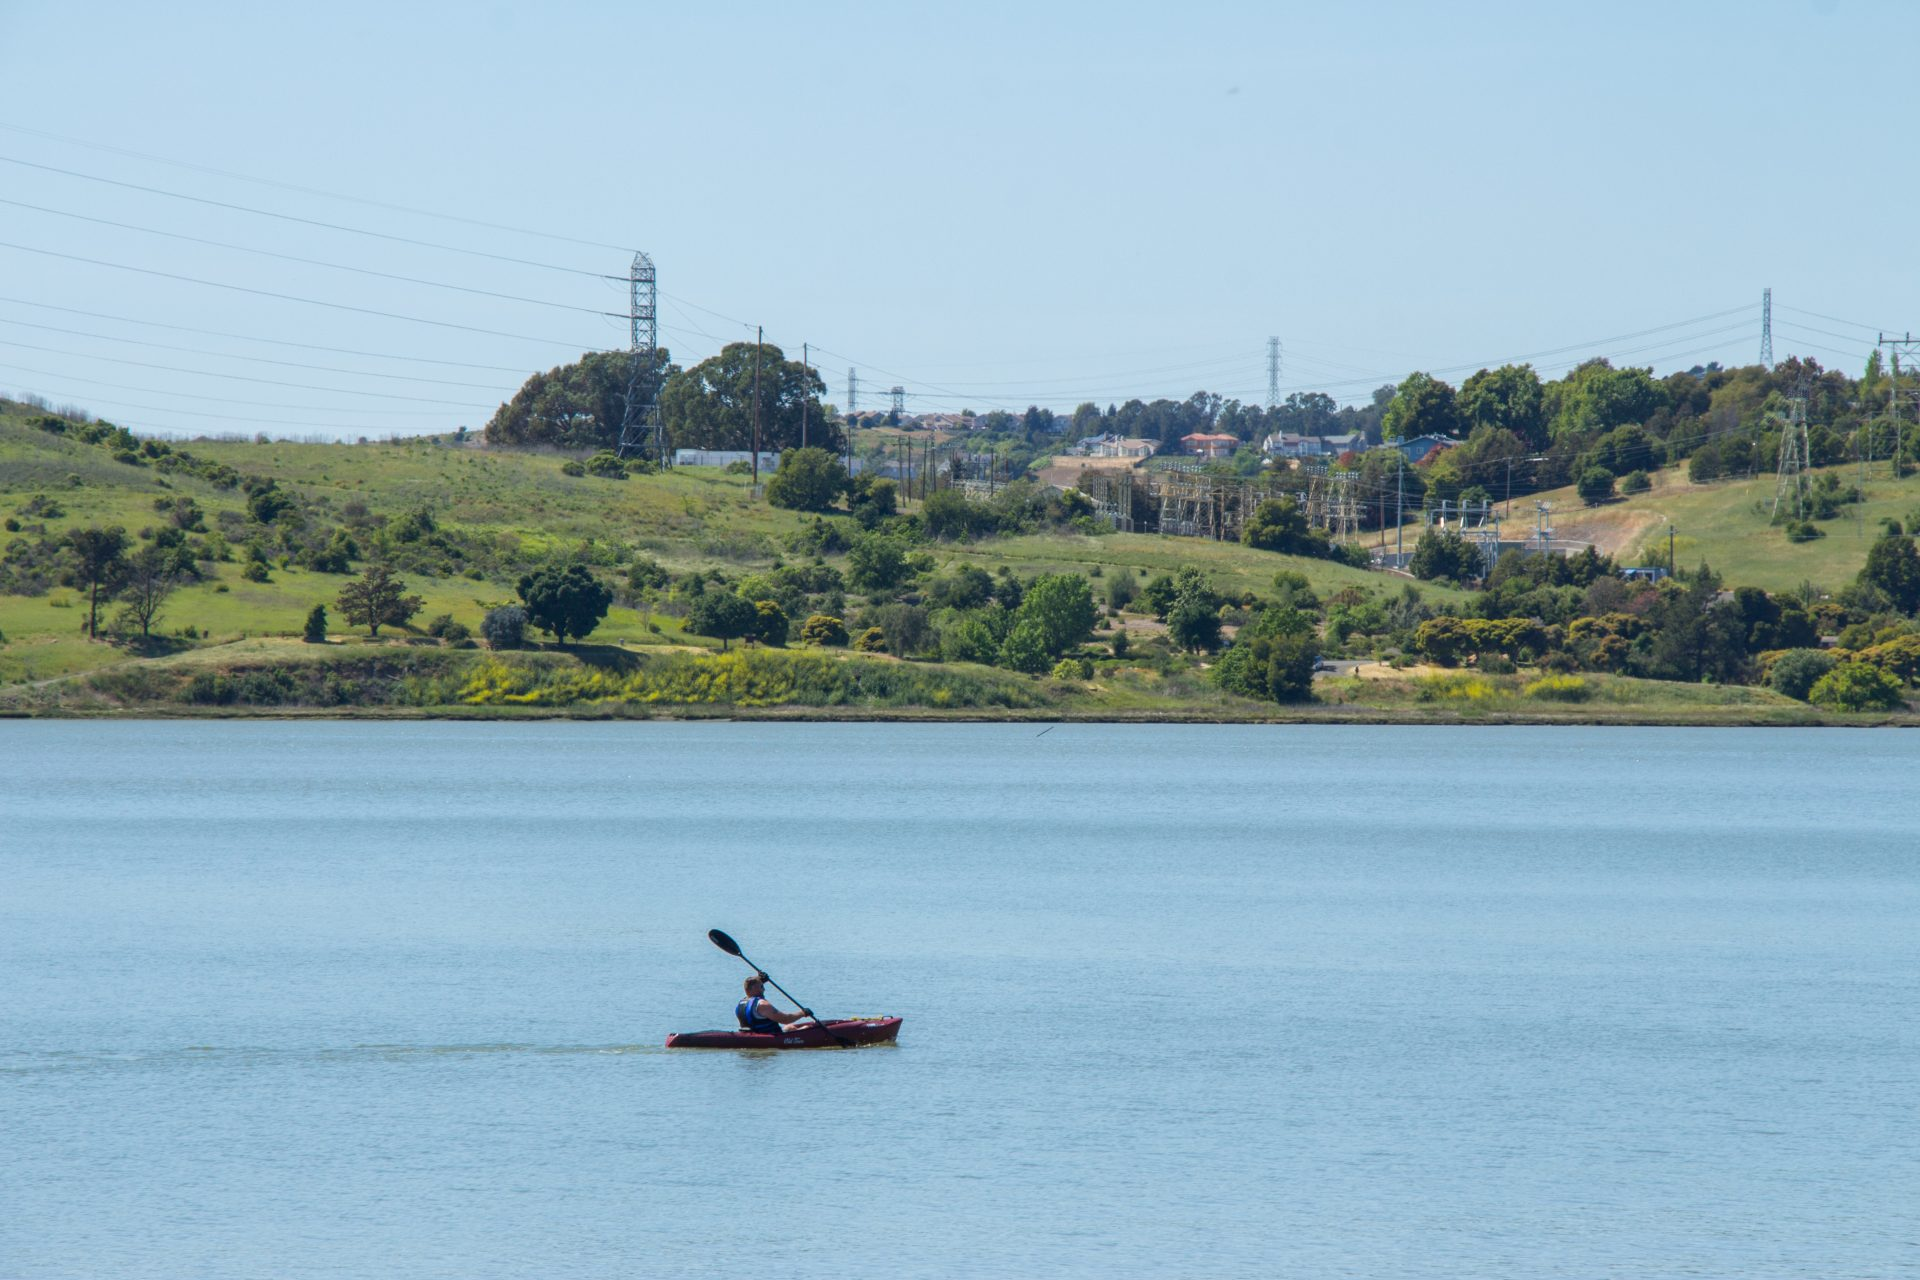 single kayak in foreground, blue water, green hills and powerlines in distance